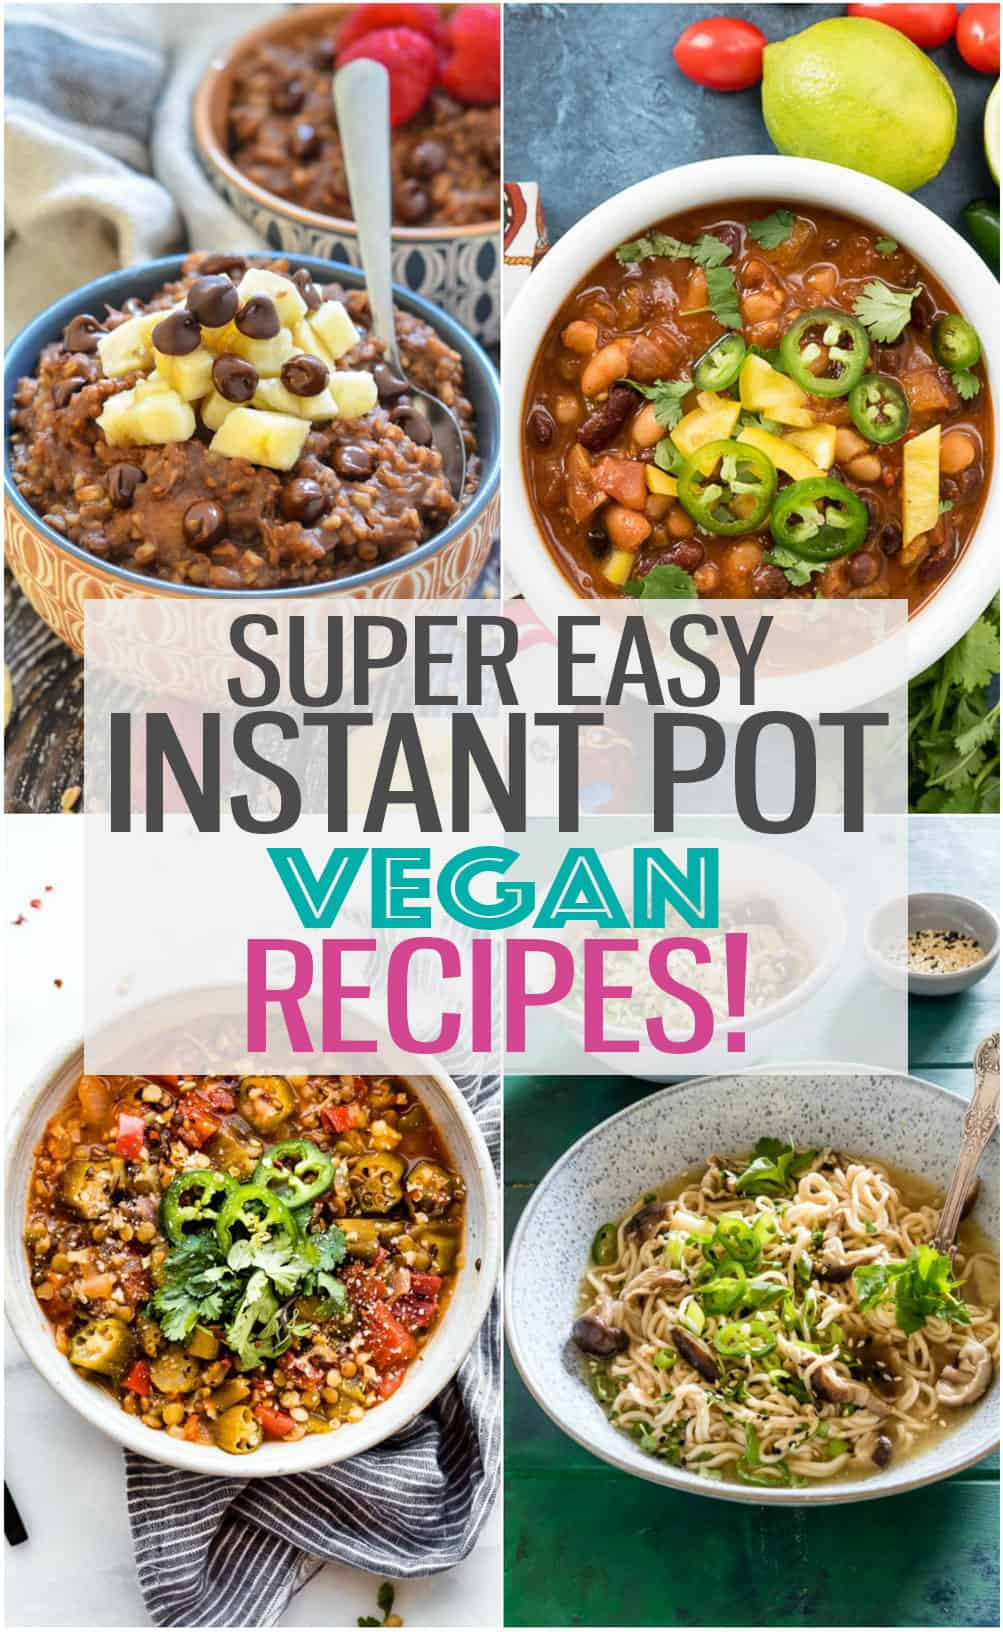 19 Ultimate Instant Pot Vegan Recipes Eating Instantly